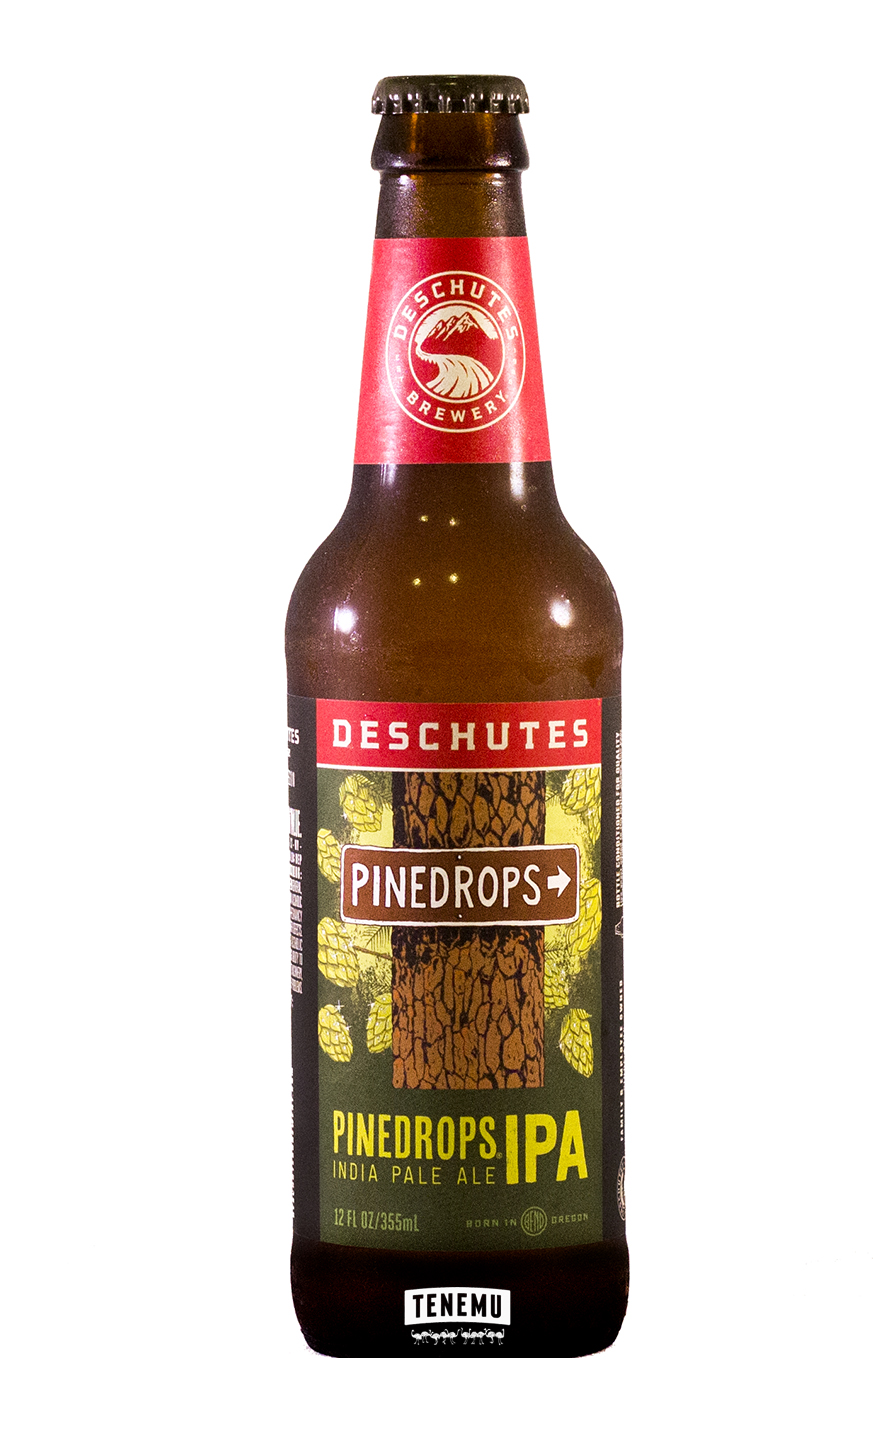 Deschutes Pinedrops IPA bottle